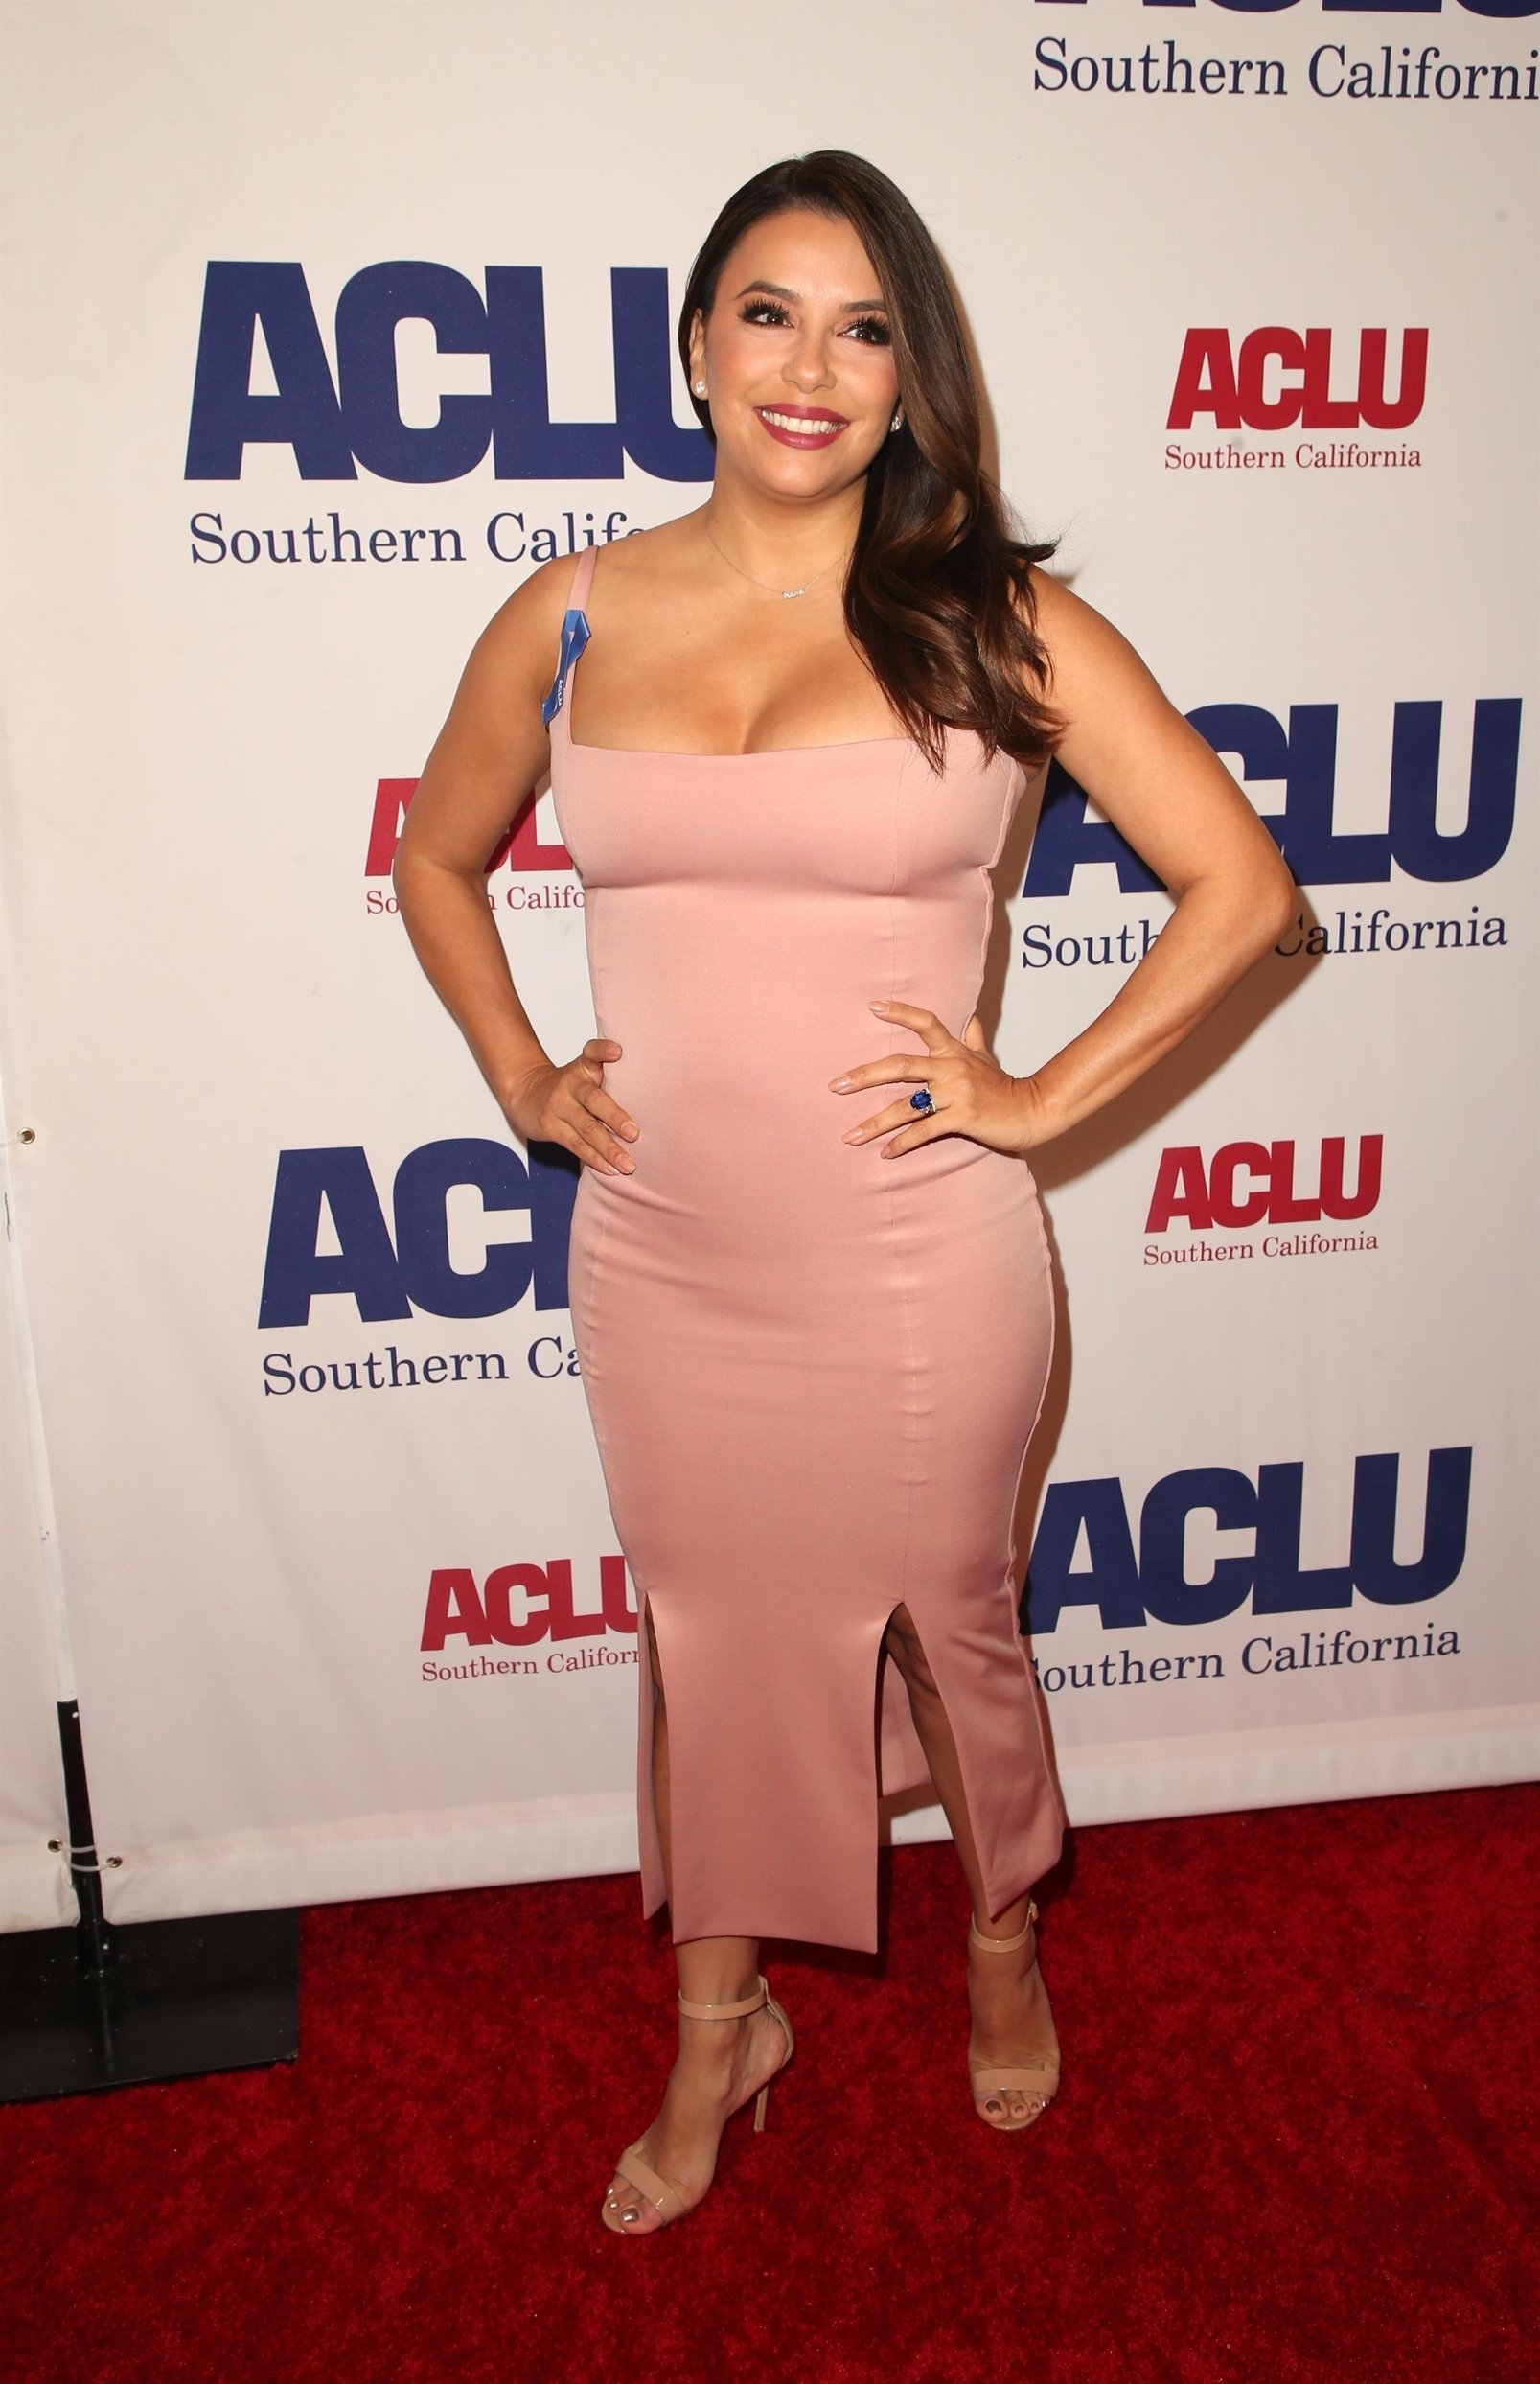 Beverly Hills, CA  - Guests pose at the ACLU of Southern California's annual ACLU Bill of Rights Dinner at The Beverly Wilshire Hotel in Beverly Hills.  Pictured: Eva Longoria  BACKGRID USA 11 NOVEMBER 2018, Image: 395513495, License: Rights-managed, Restrictions: , Model Release: no, Credit line: Profimedia, Backgrid USA